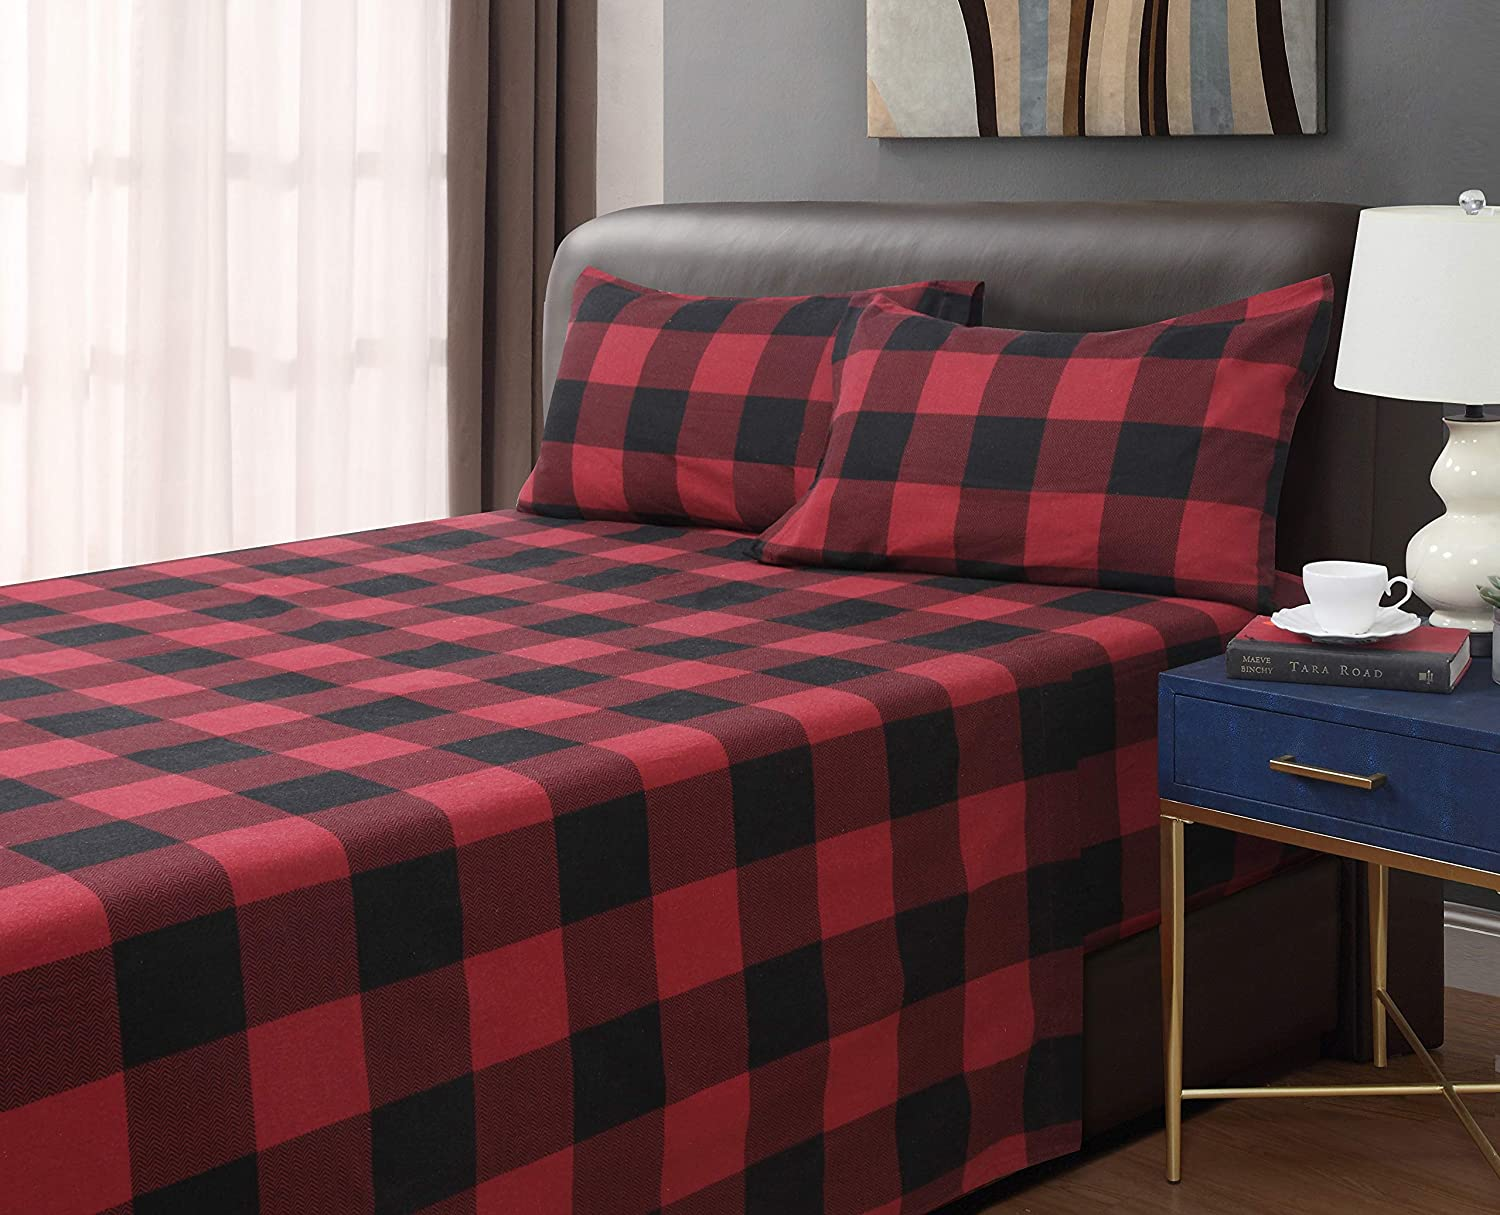 Universal Home Fashions Buffalo Plaid 3-Piece Flannel Sheet Set Twin Red/Black 39''x75''